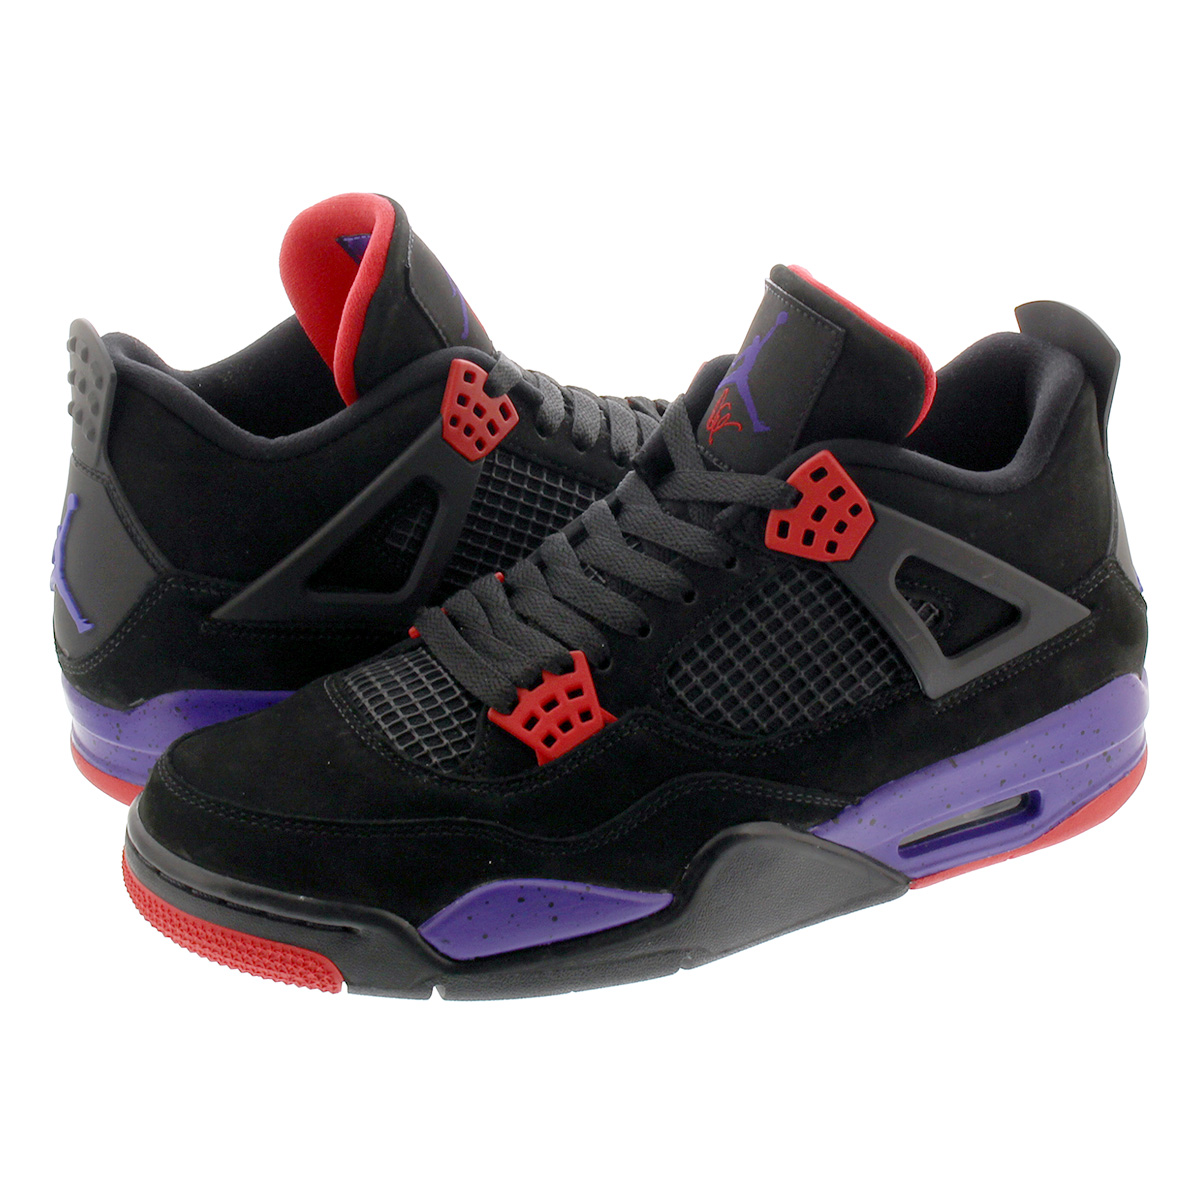 separation shoes de7b4 7adf8 NIKE AIR JORDAN 4 RETRO Nike Air Jordan 4 nostalgic NRG BLACK/PURPLE/RED  aq3816-065